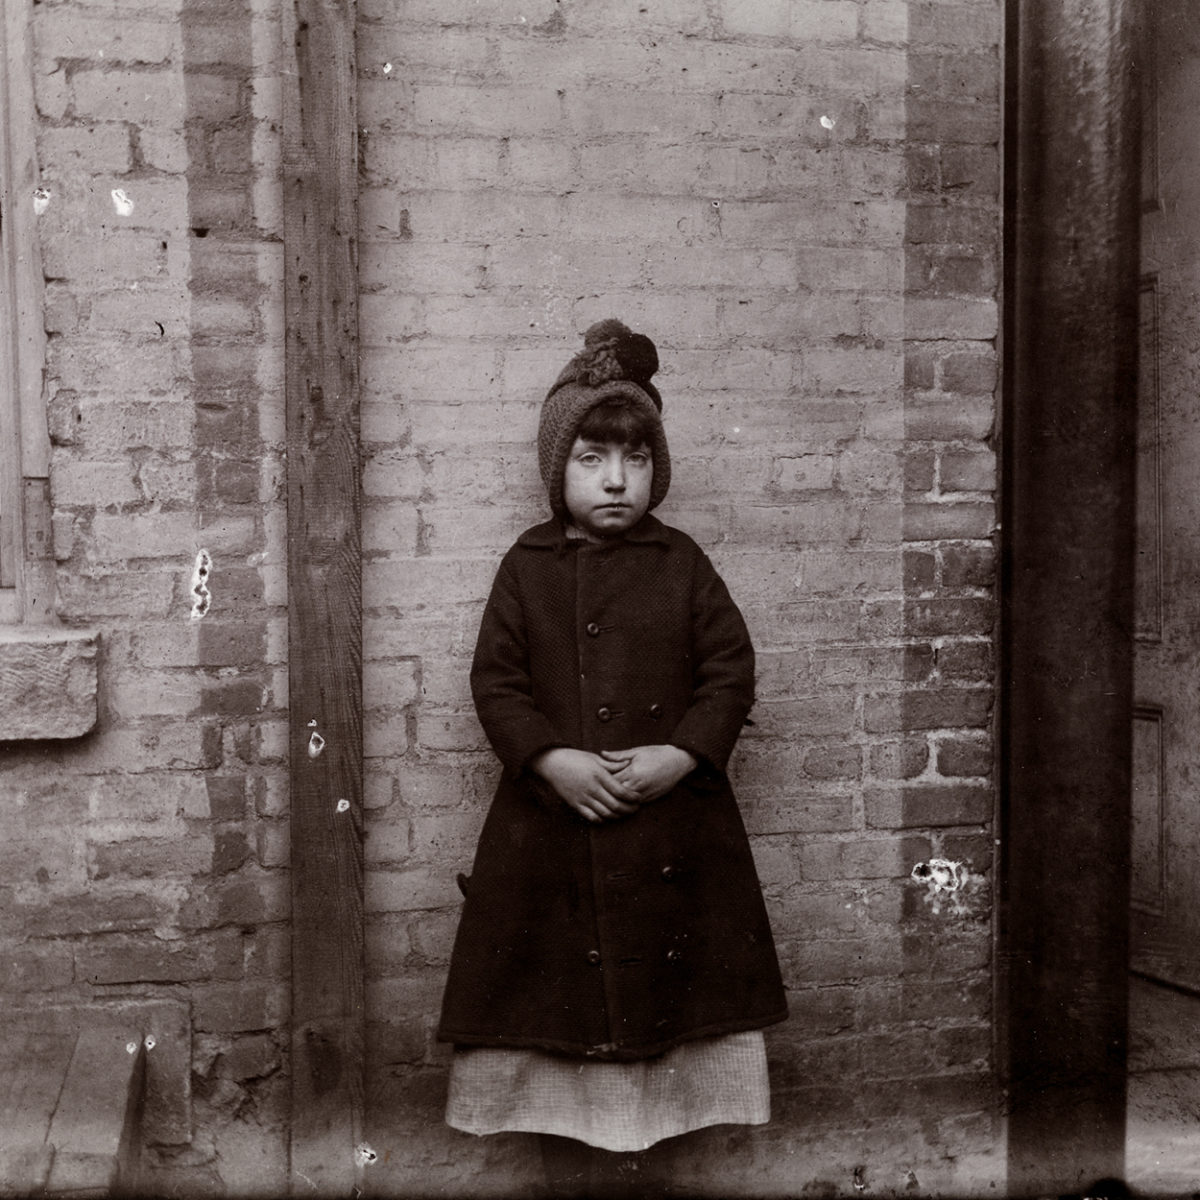 Jacob A. Riis – LIGHT IN DARK PLACES